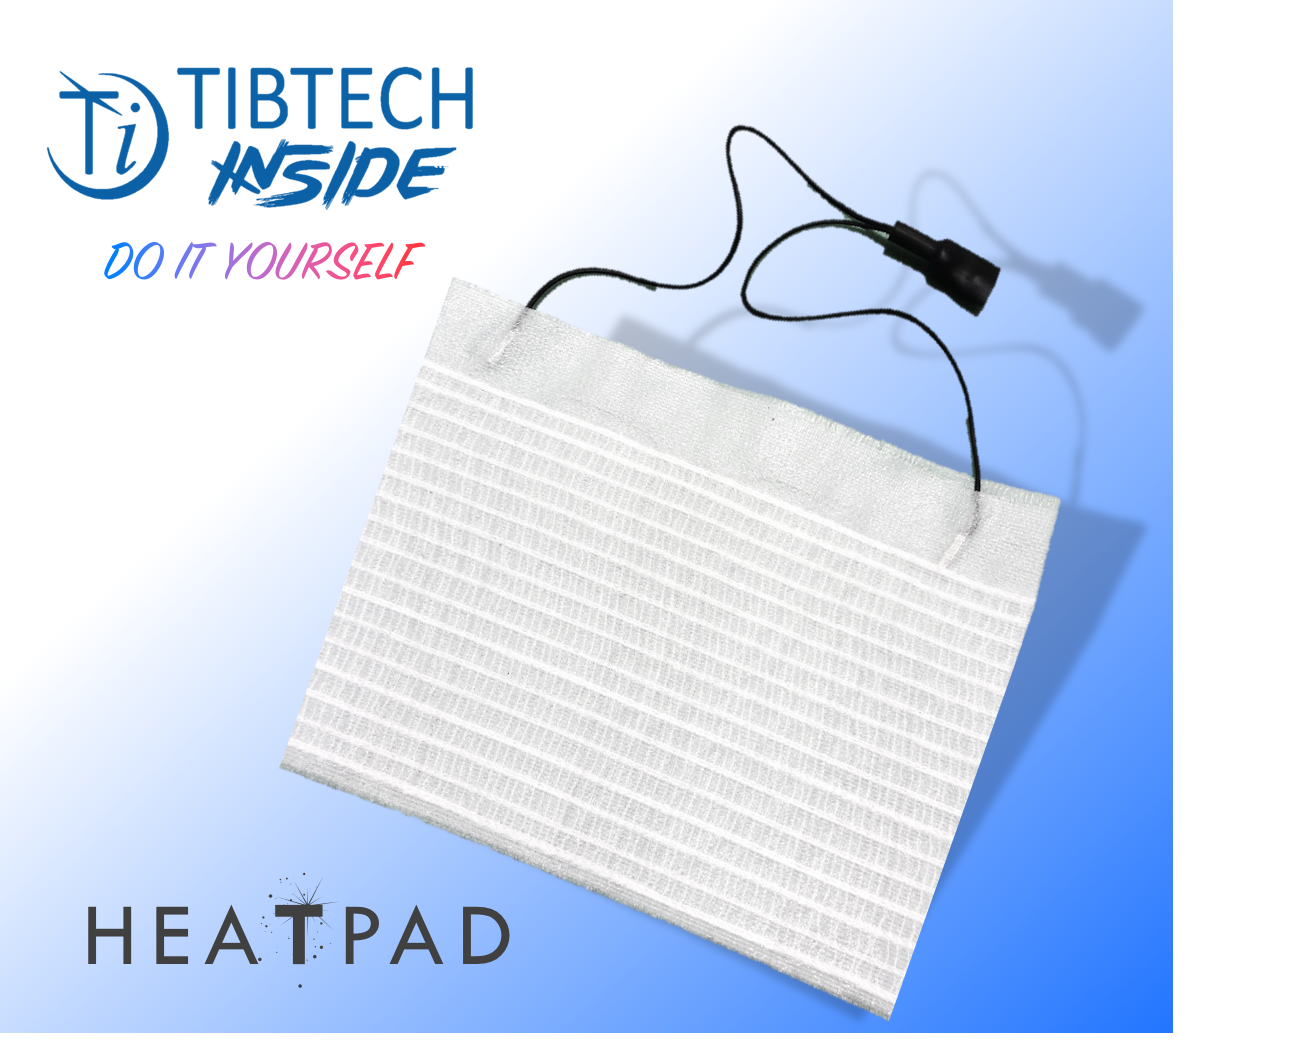 TIBTECH-inside: order samples of heat pad